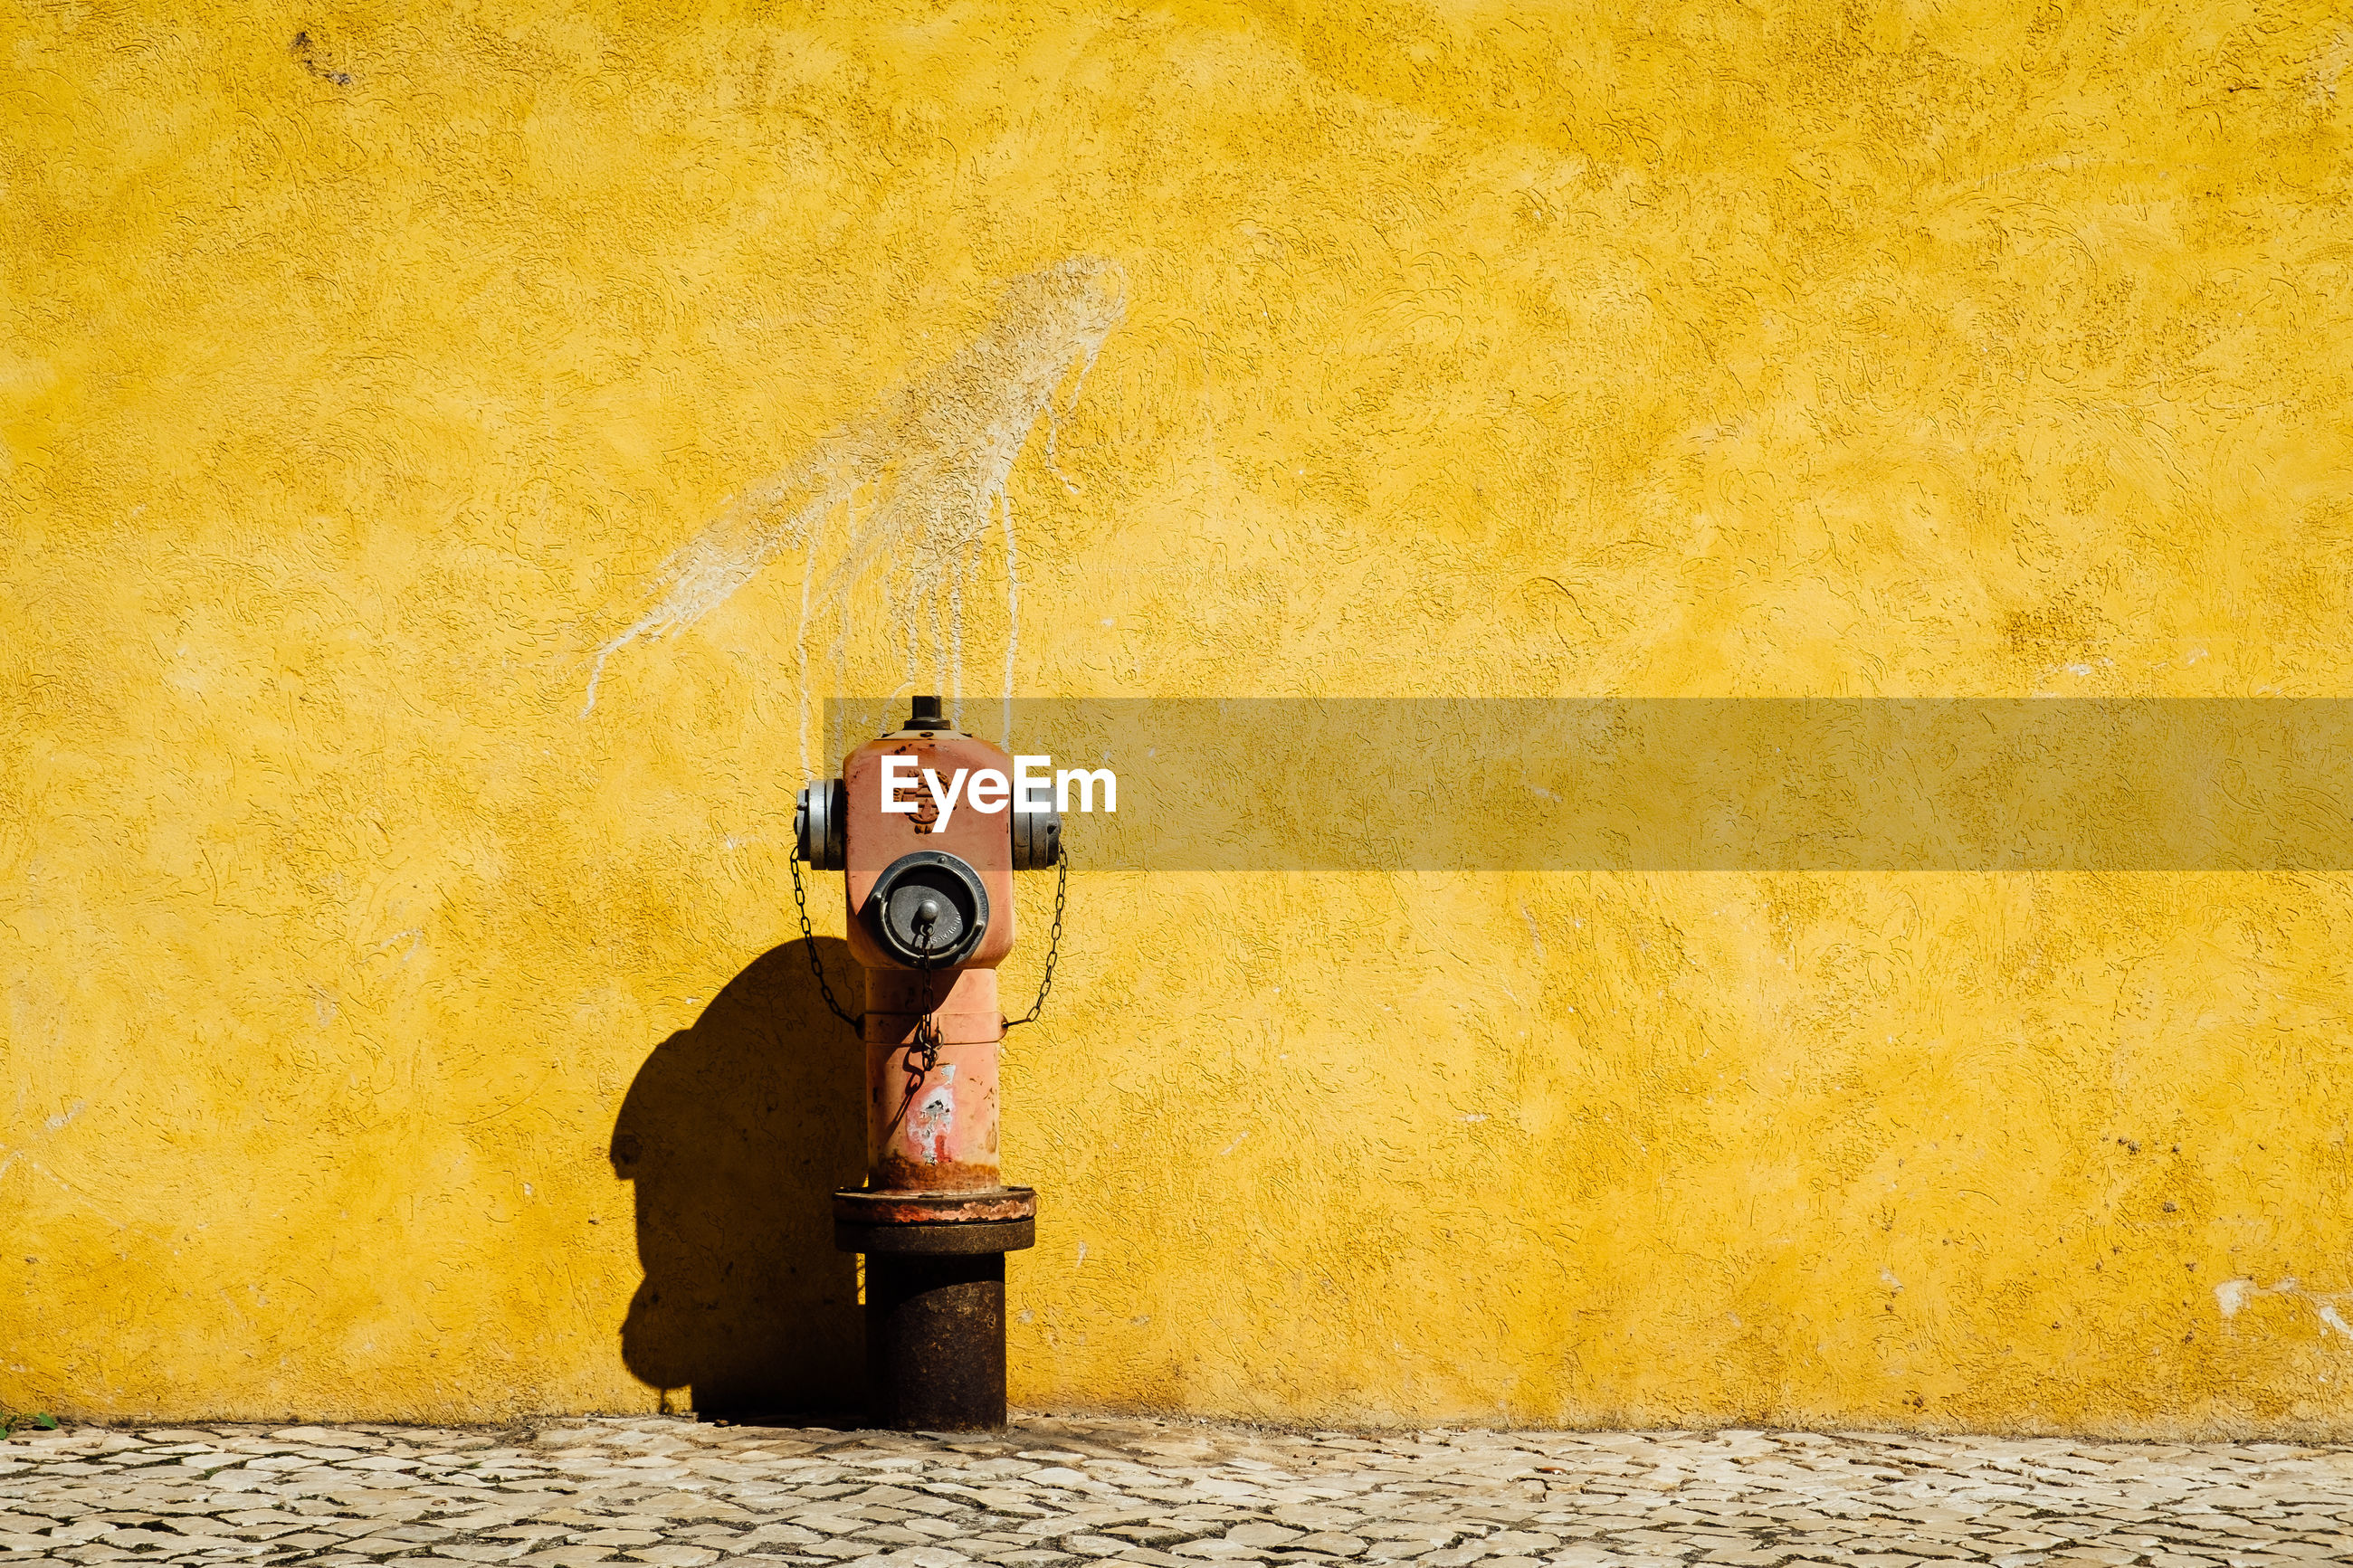 Fire hydrant on footpath by yellow wall during sunny day